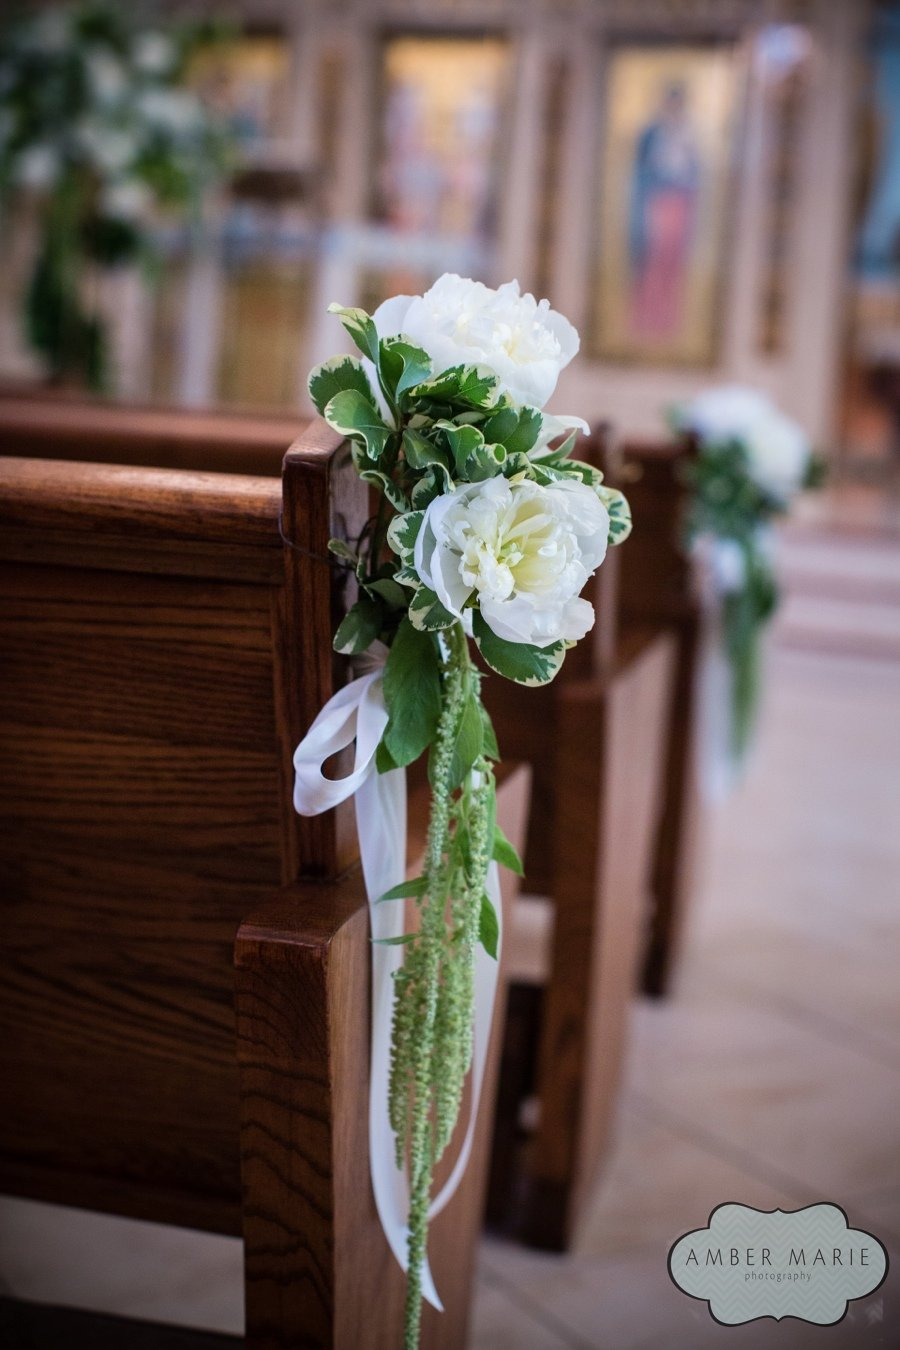 Carnegie Museums Pittsburgh Wedding Ceremony - White Peonies on Church Pews